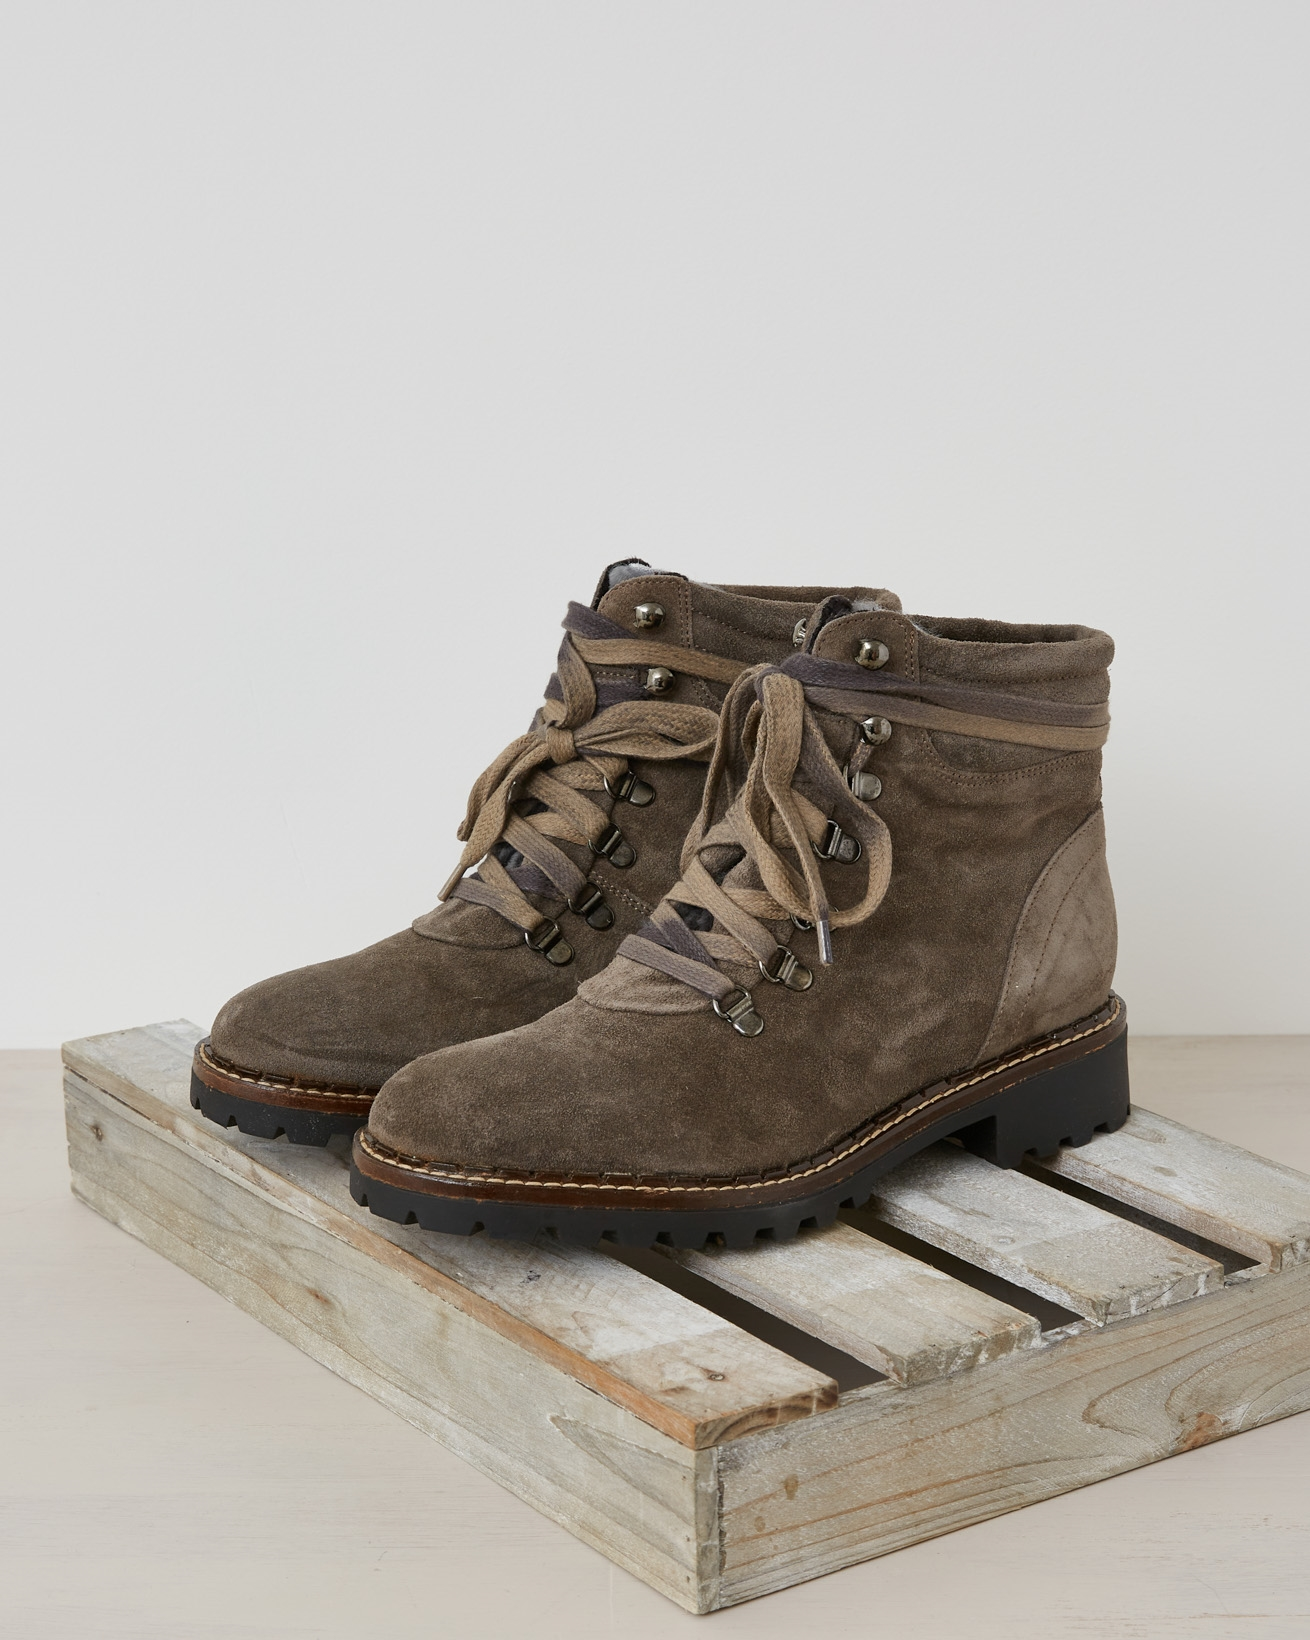 Hiker Boot - Mid Grey - Size 39 - 2536